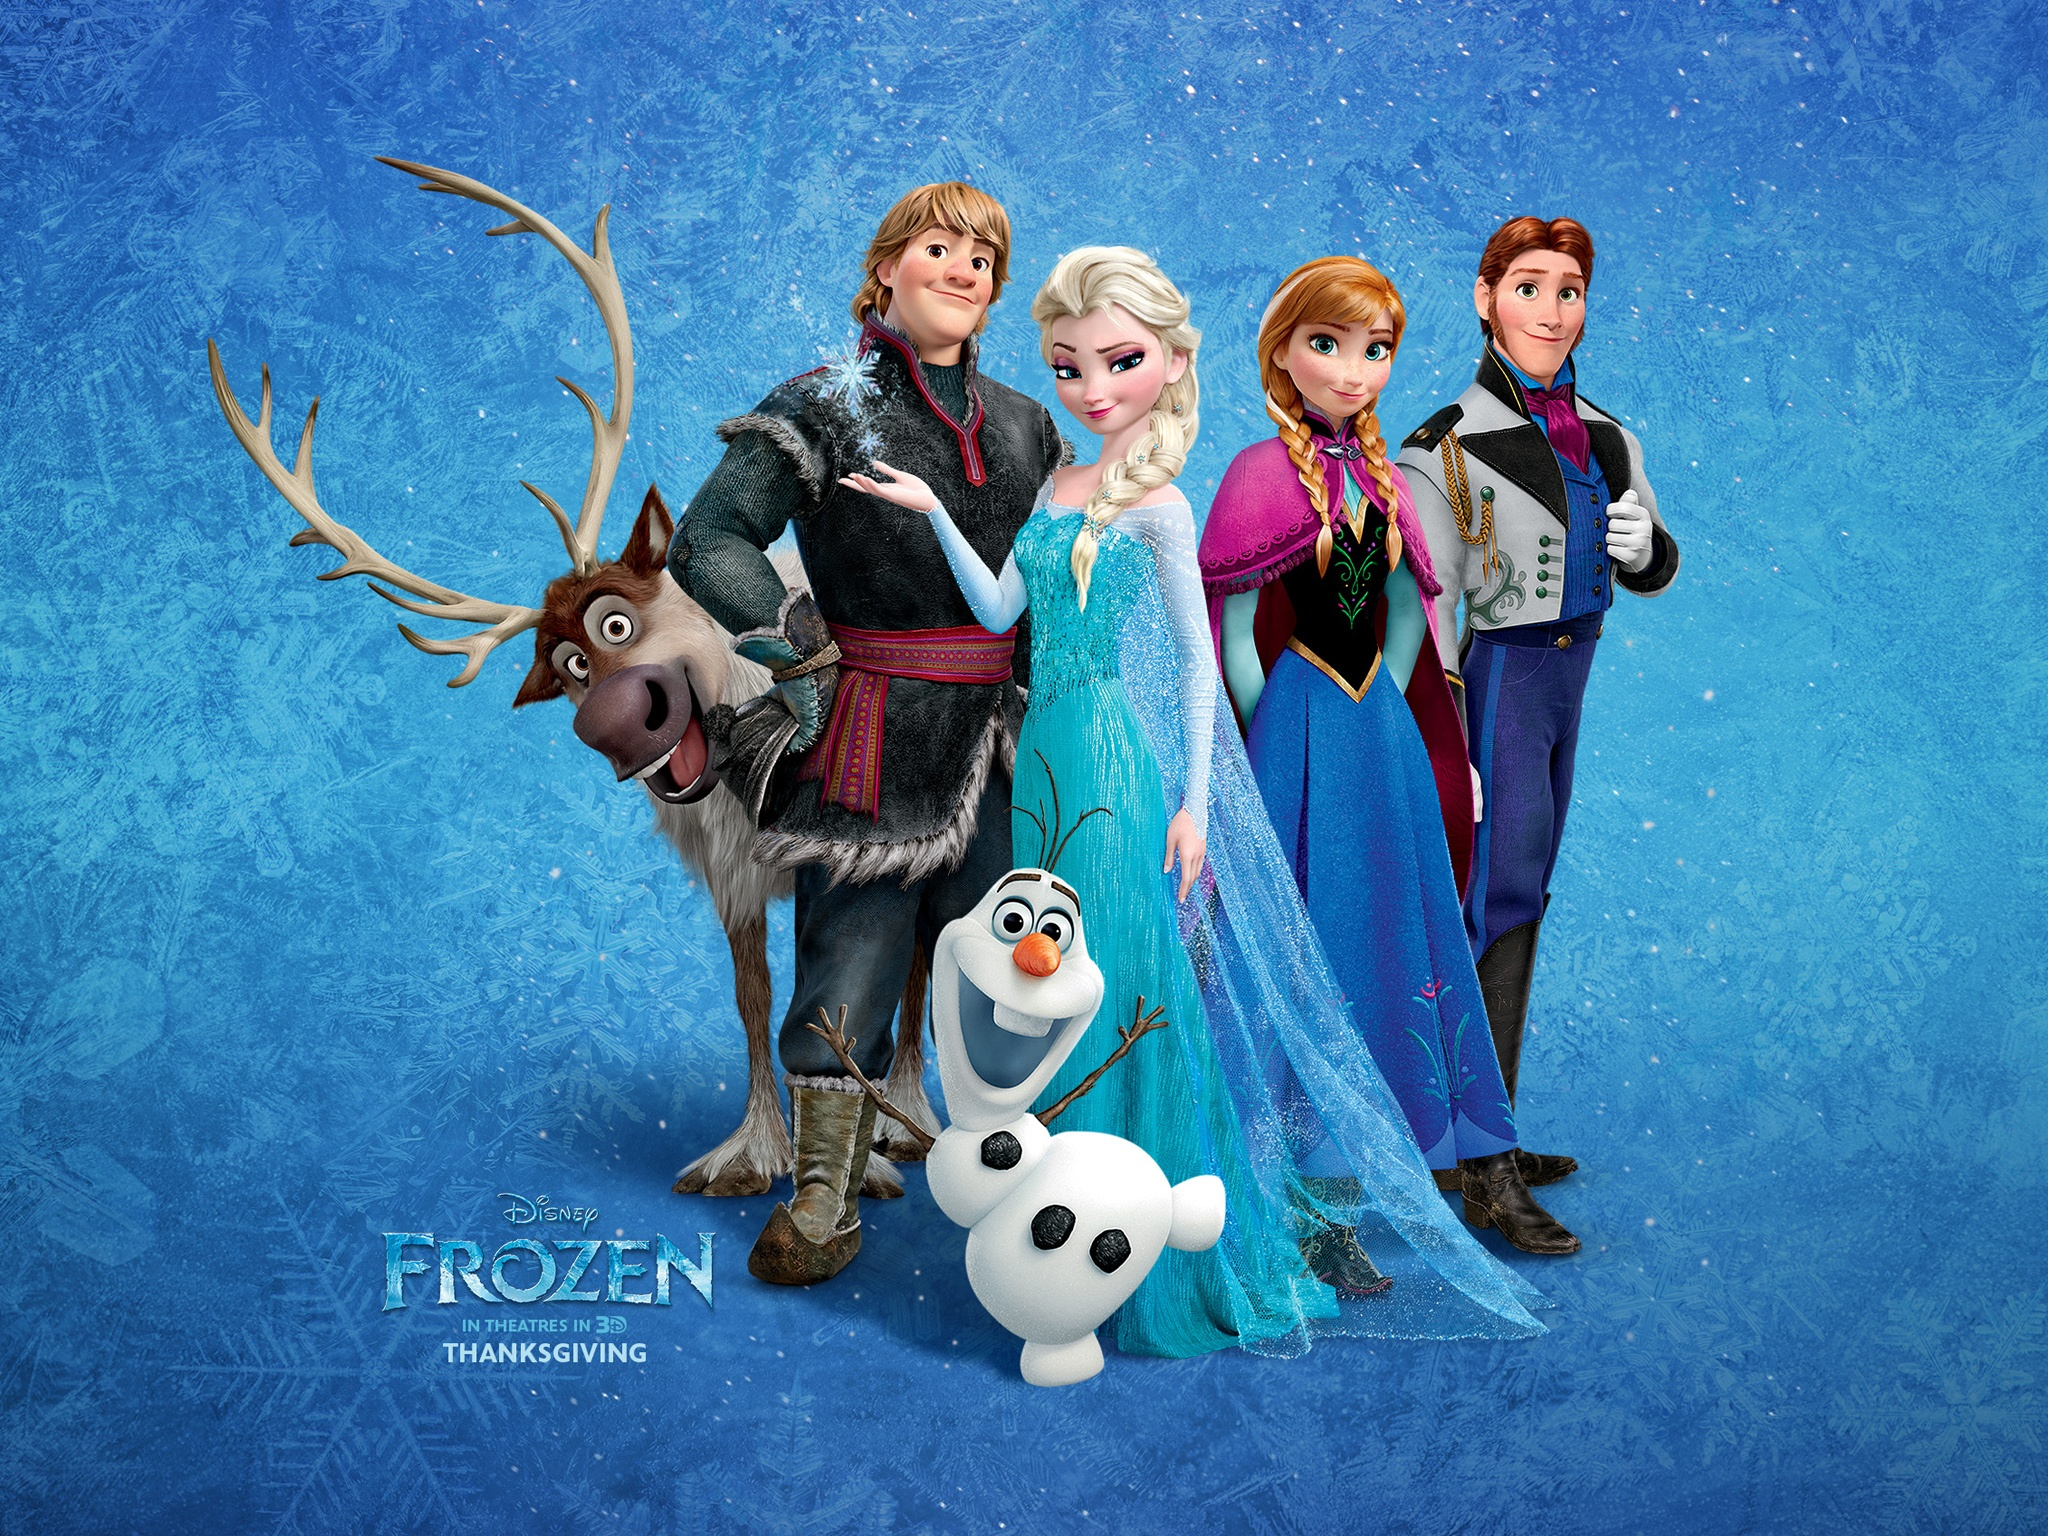 frozen_2013_movie-2048x1536.jpg